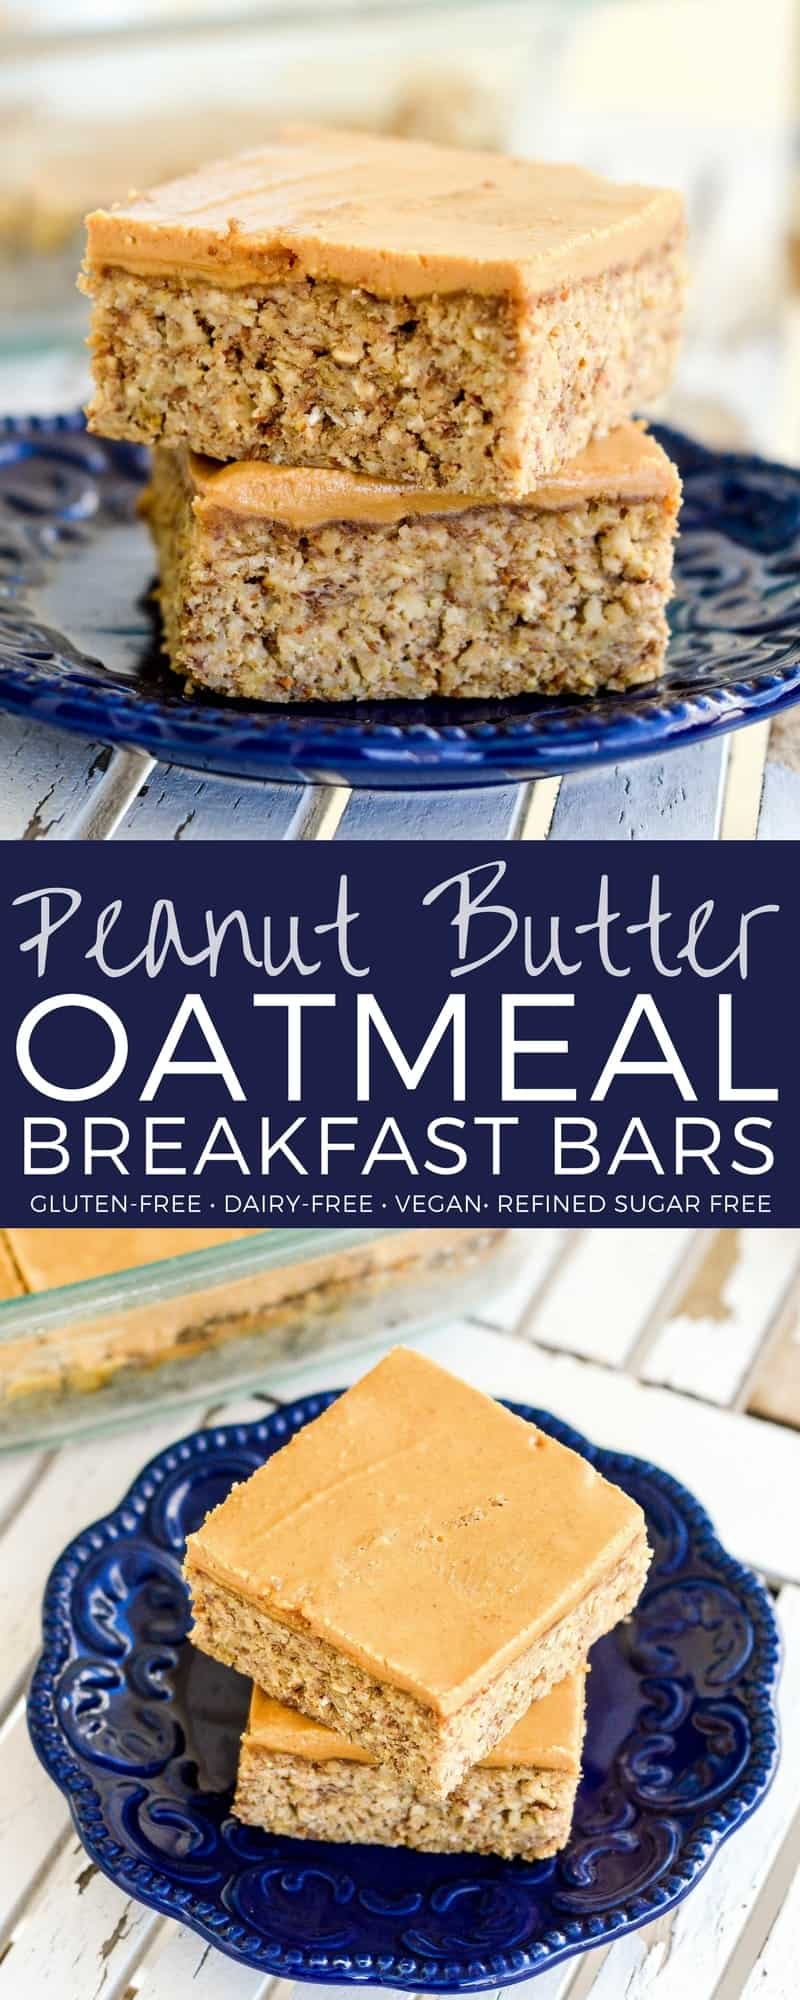 These Peanut Butter Oatmeal Breakfast Bars are an easy, healthy & filling make-ahead breakfast for busy mornings! They are loaded with fiber, protein & omega-3s to keep you full all morning long! Plus they're gluten-free, dairy-free, refined sugar free and vegan! #breakfast #bars #oatmeal #peanutbutter #glutenfree #dairyfree #vegan #healthy #refinedsugarfree